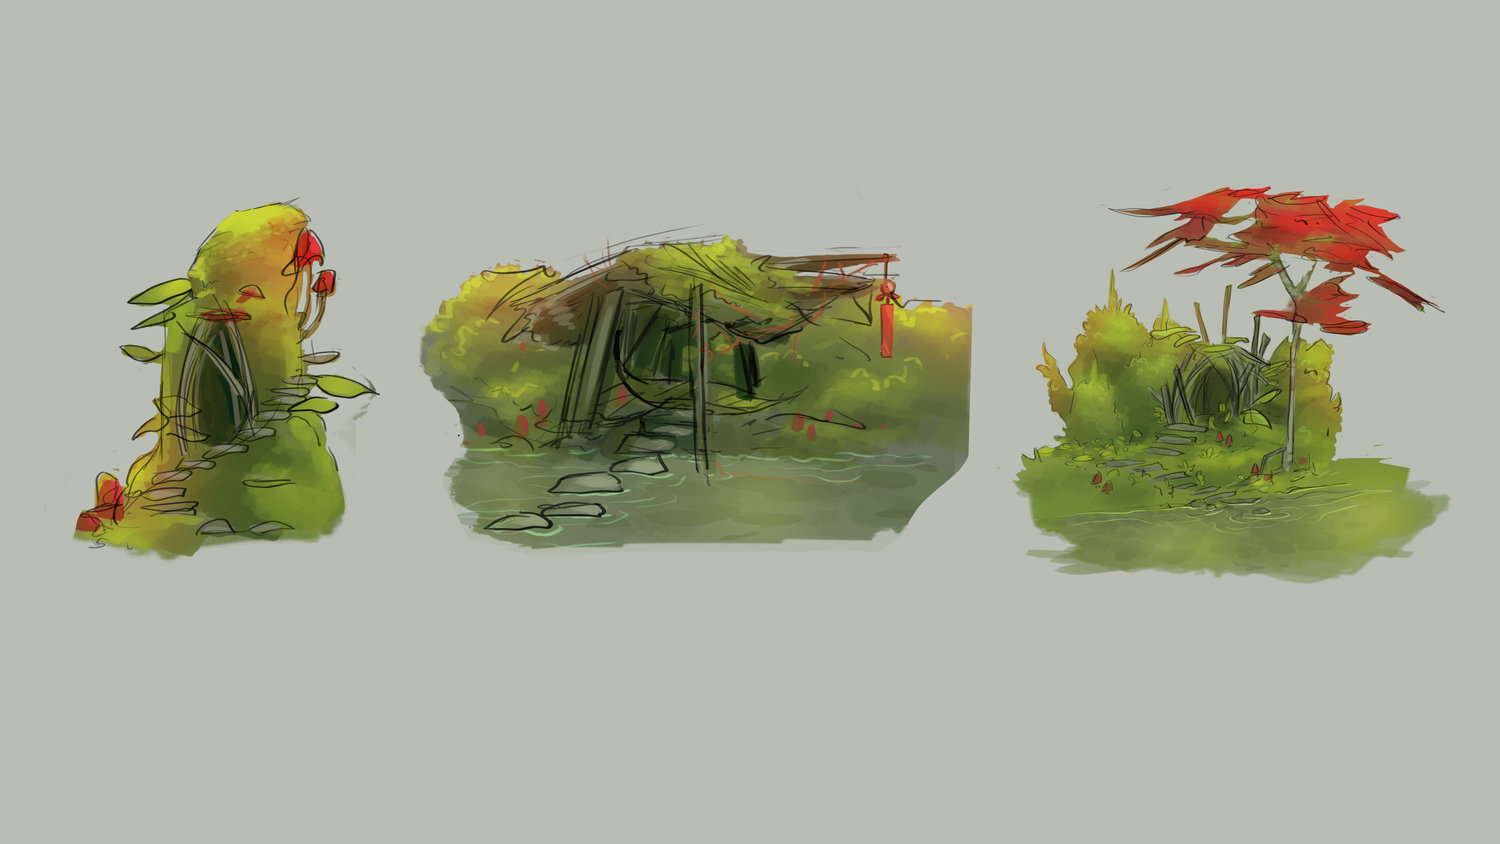 Environment and color exploration for thesis project. Programs: Photoshop